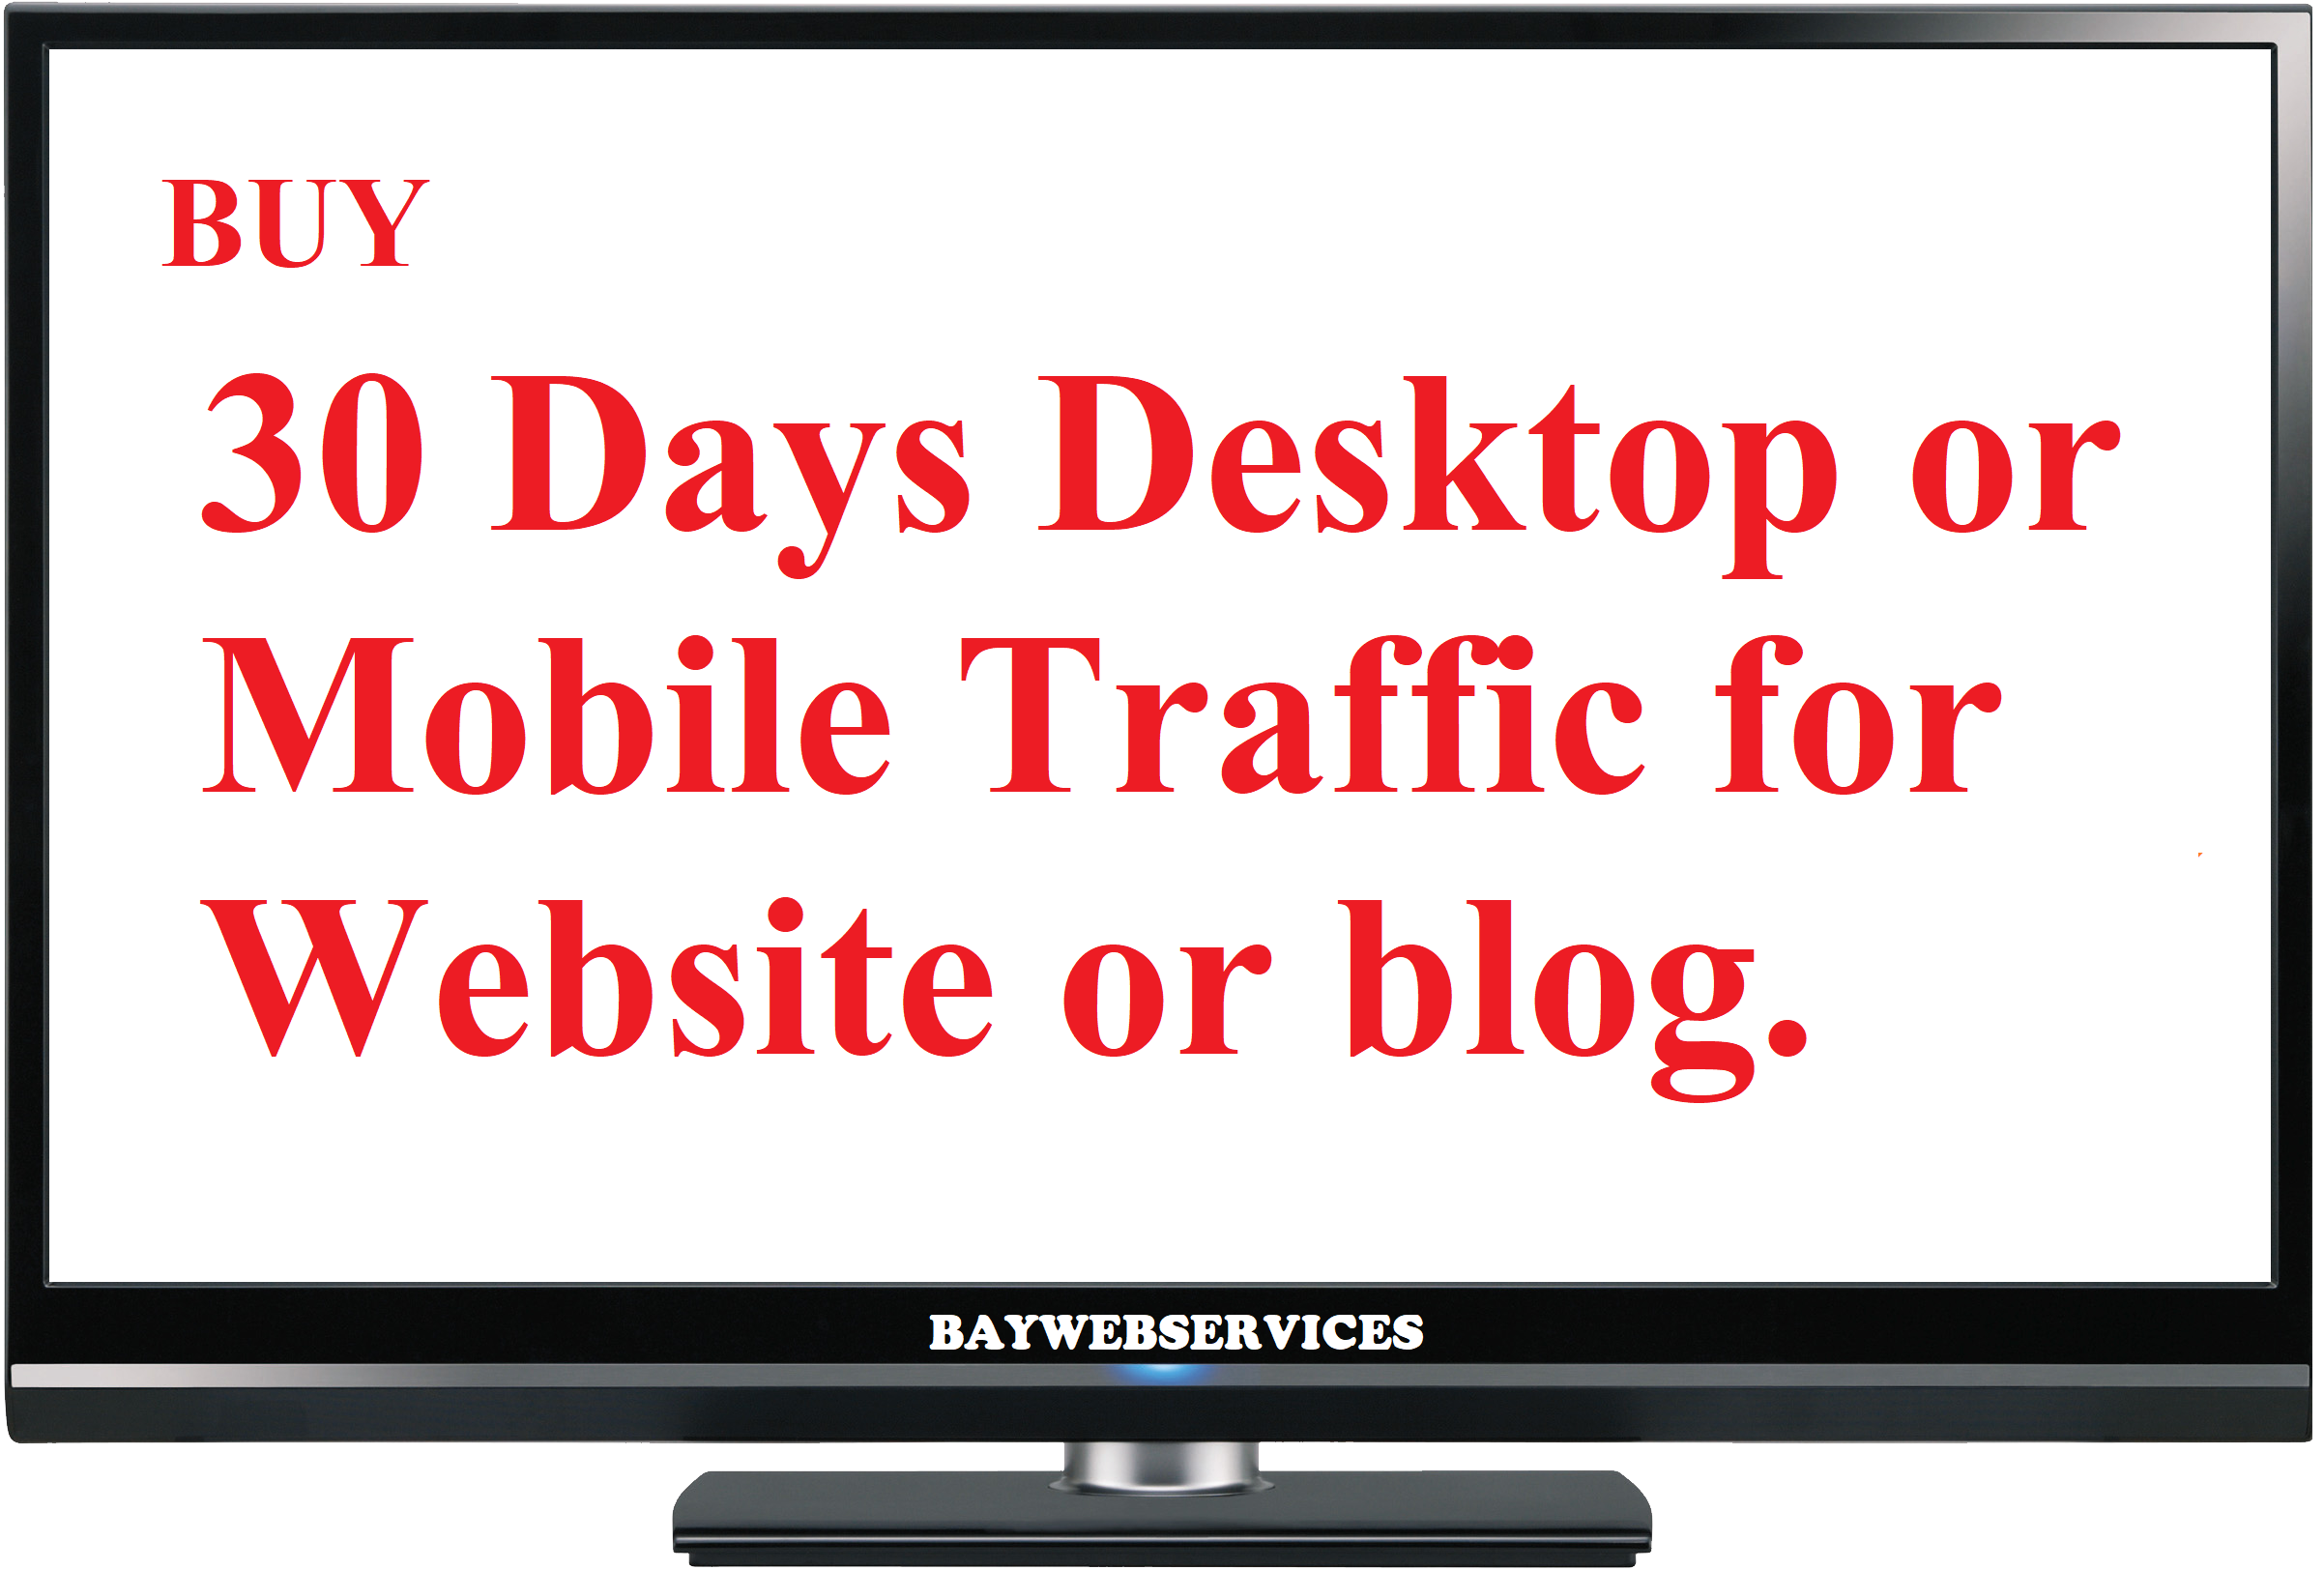 30 Days Desktop or Mobile Traffic for your Website or blog